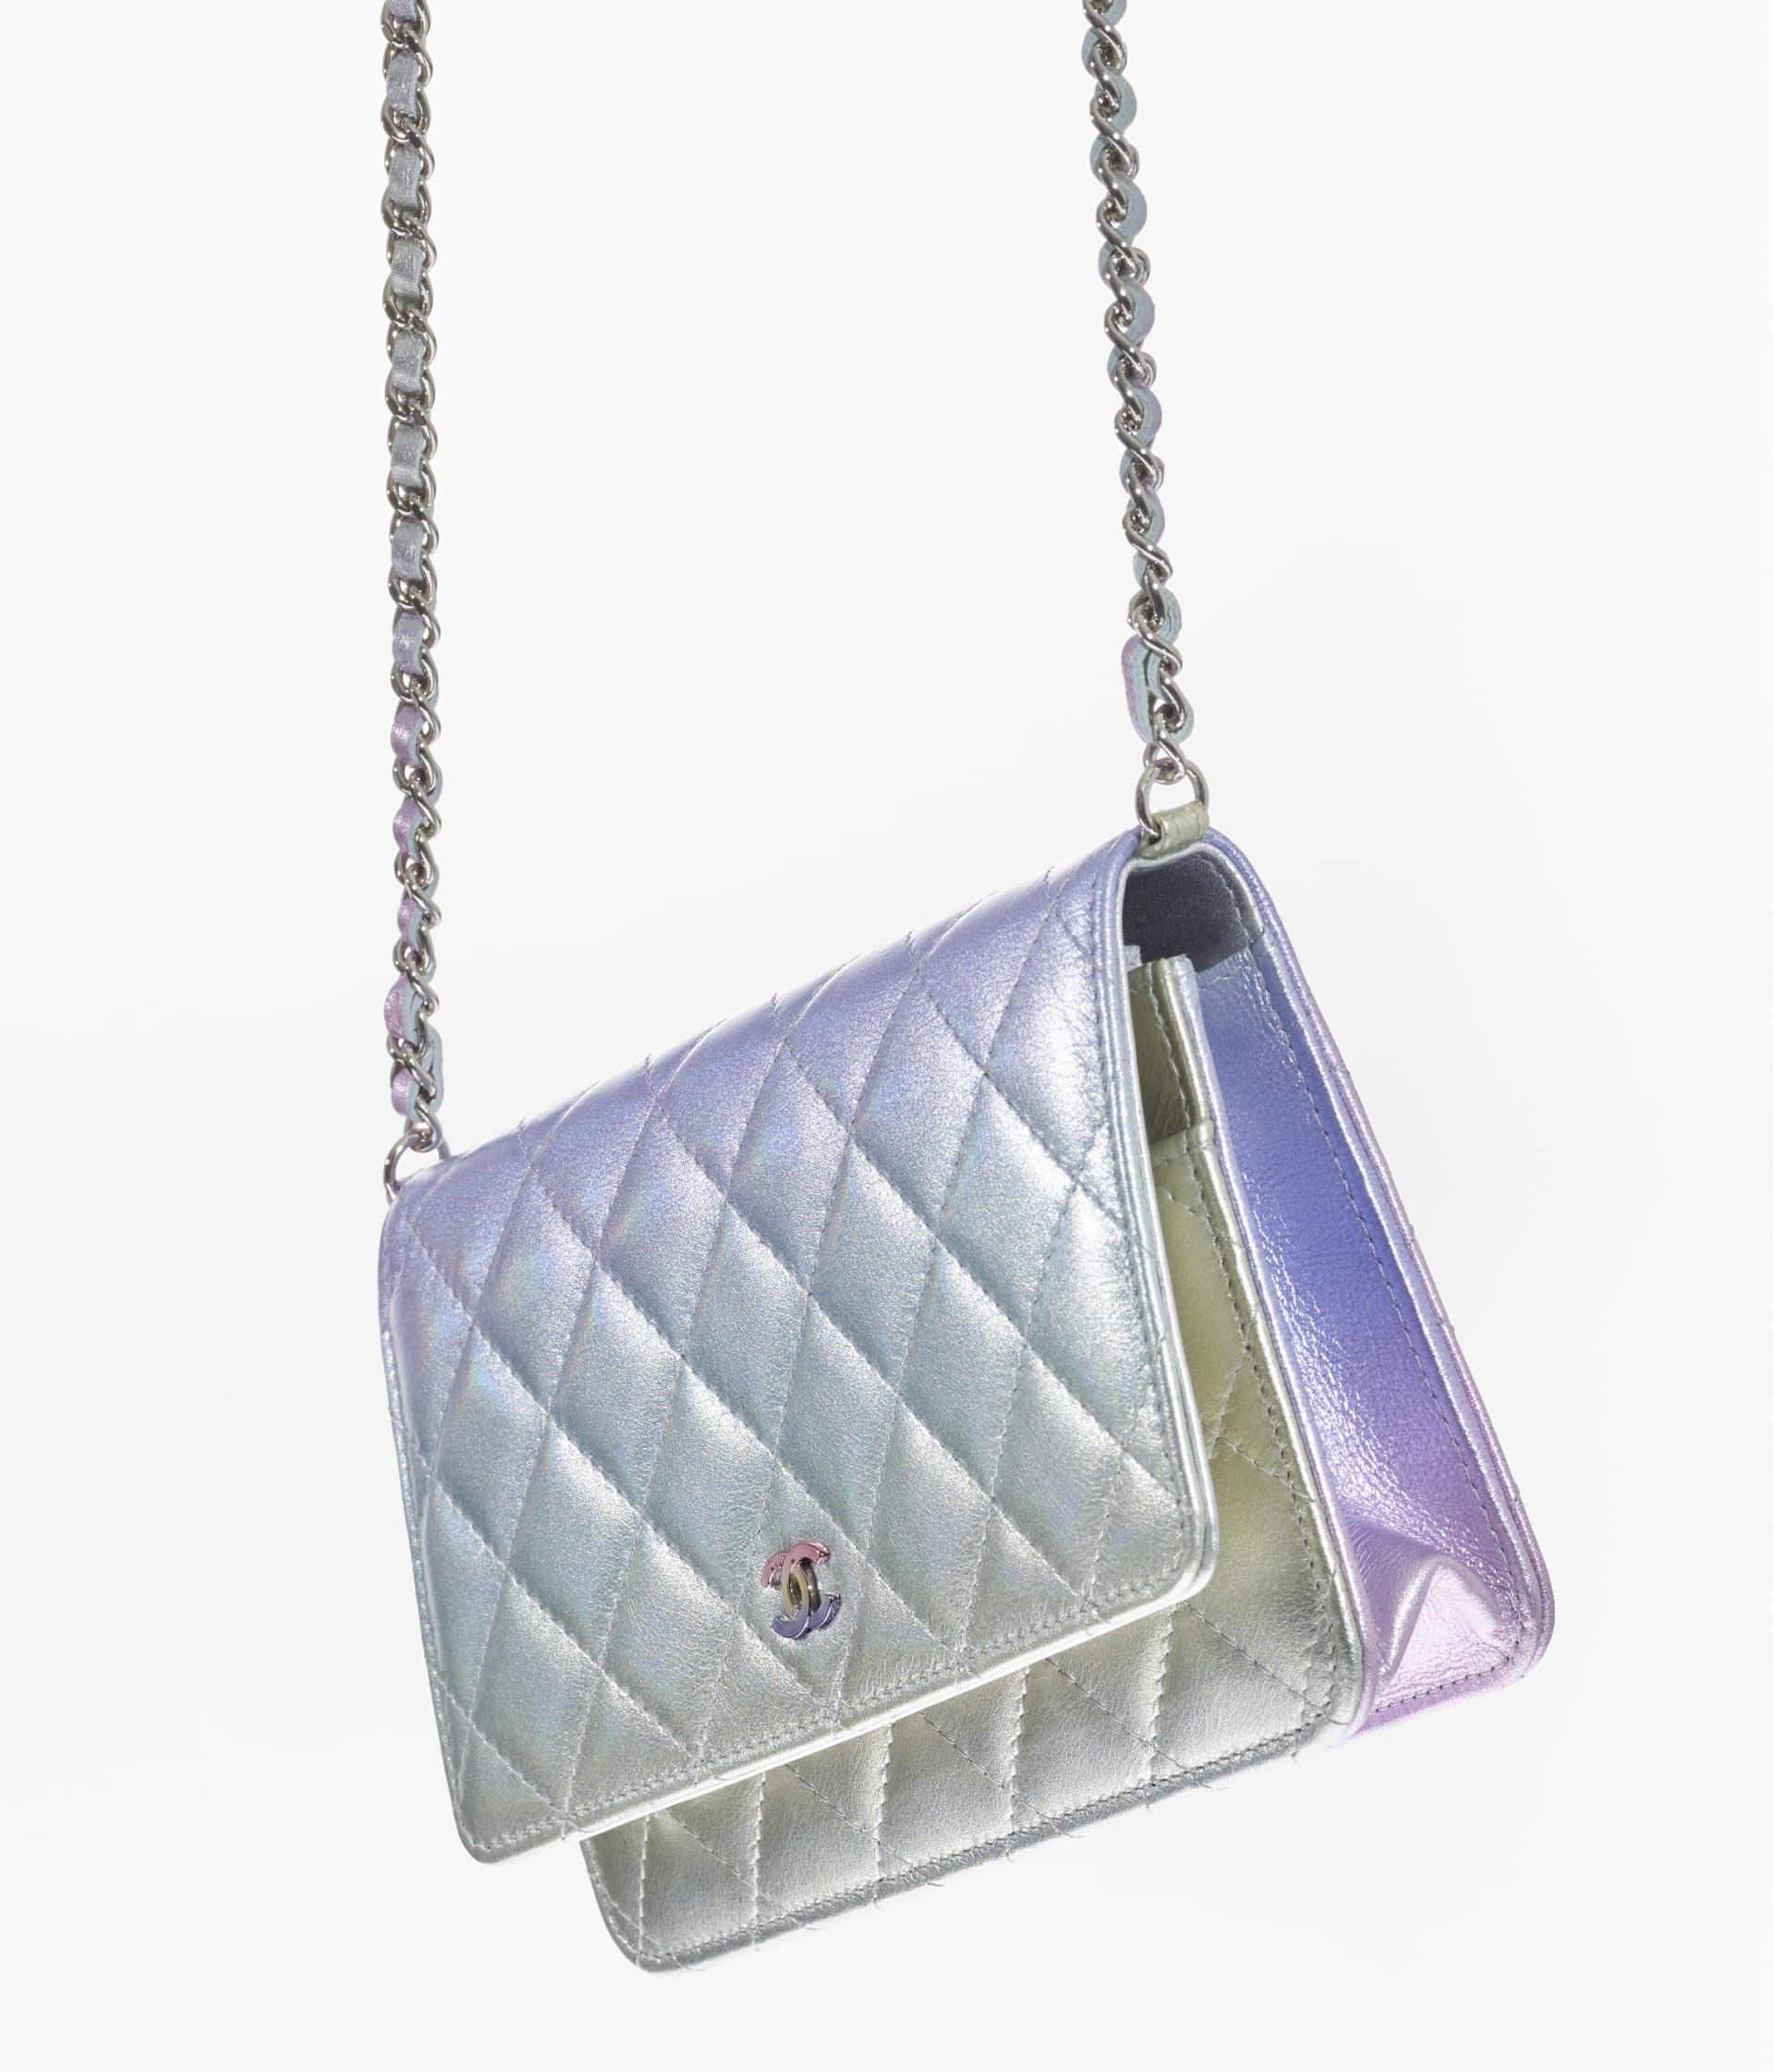 image 3 - Classic Wallet on Chain - Gradient Metallic Calfskin & Gradient Lacquered Metal - Silver, Blue, Yellow and Purple